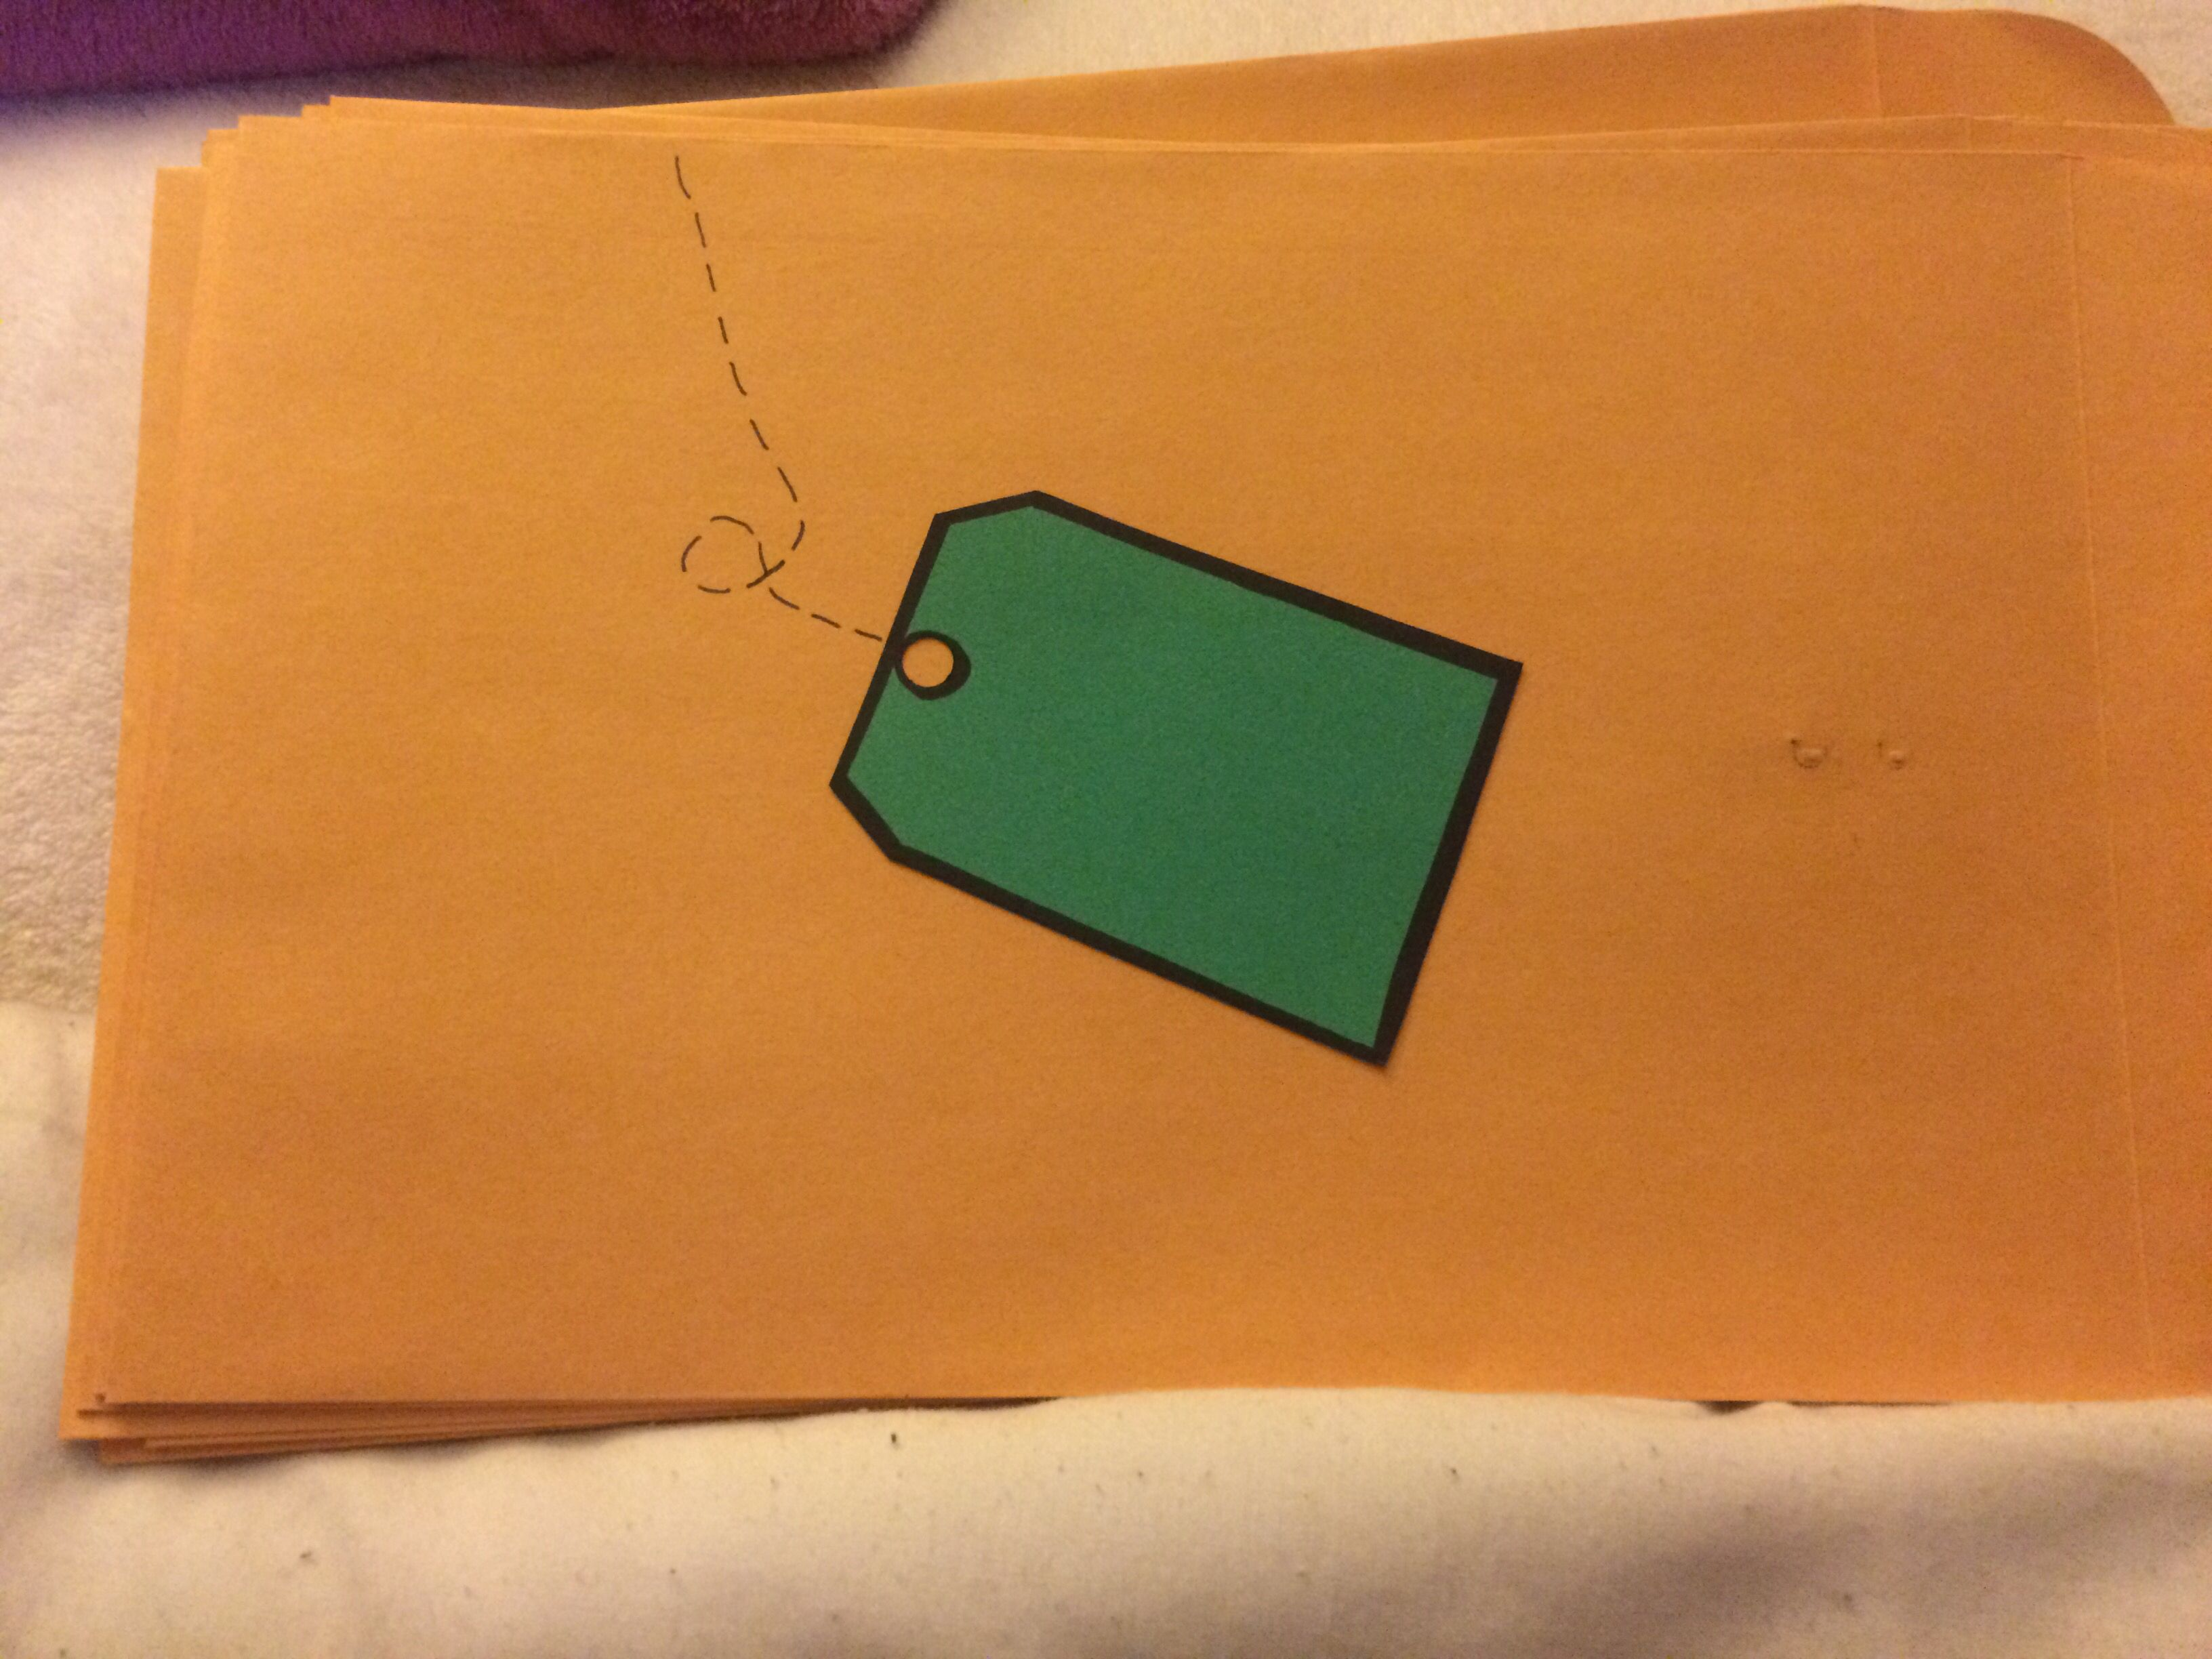 Manila folder dressed up with green label. Finally created a version of this pin